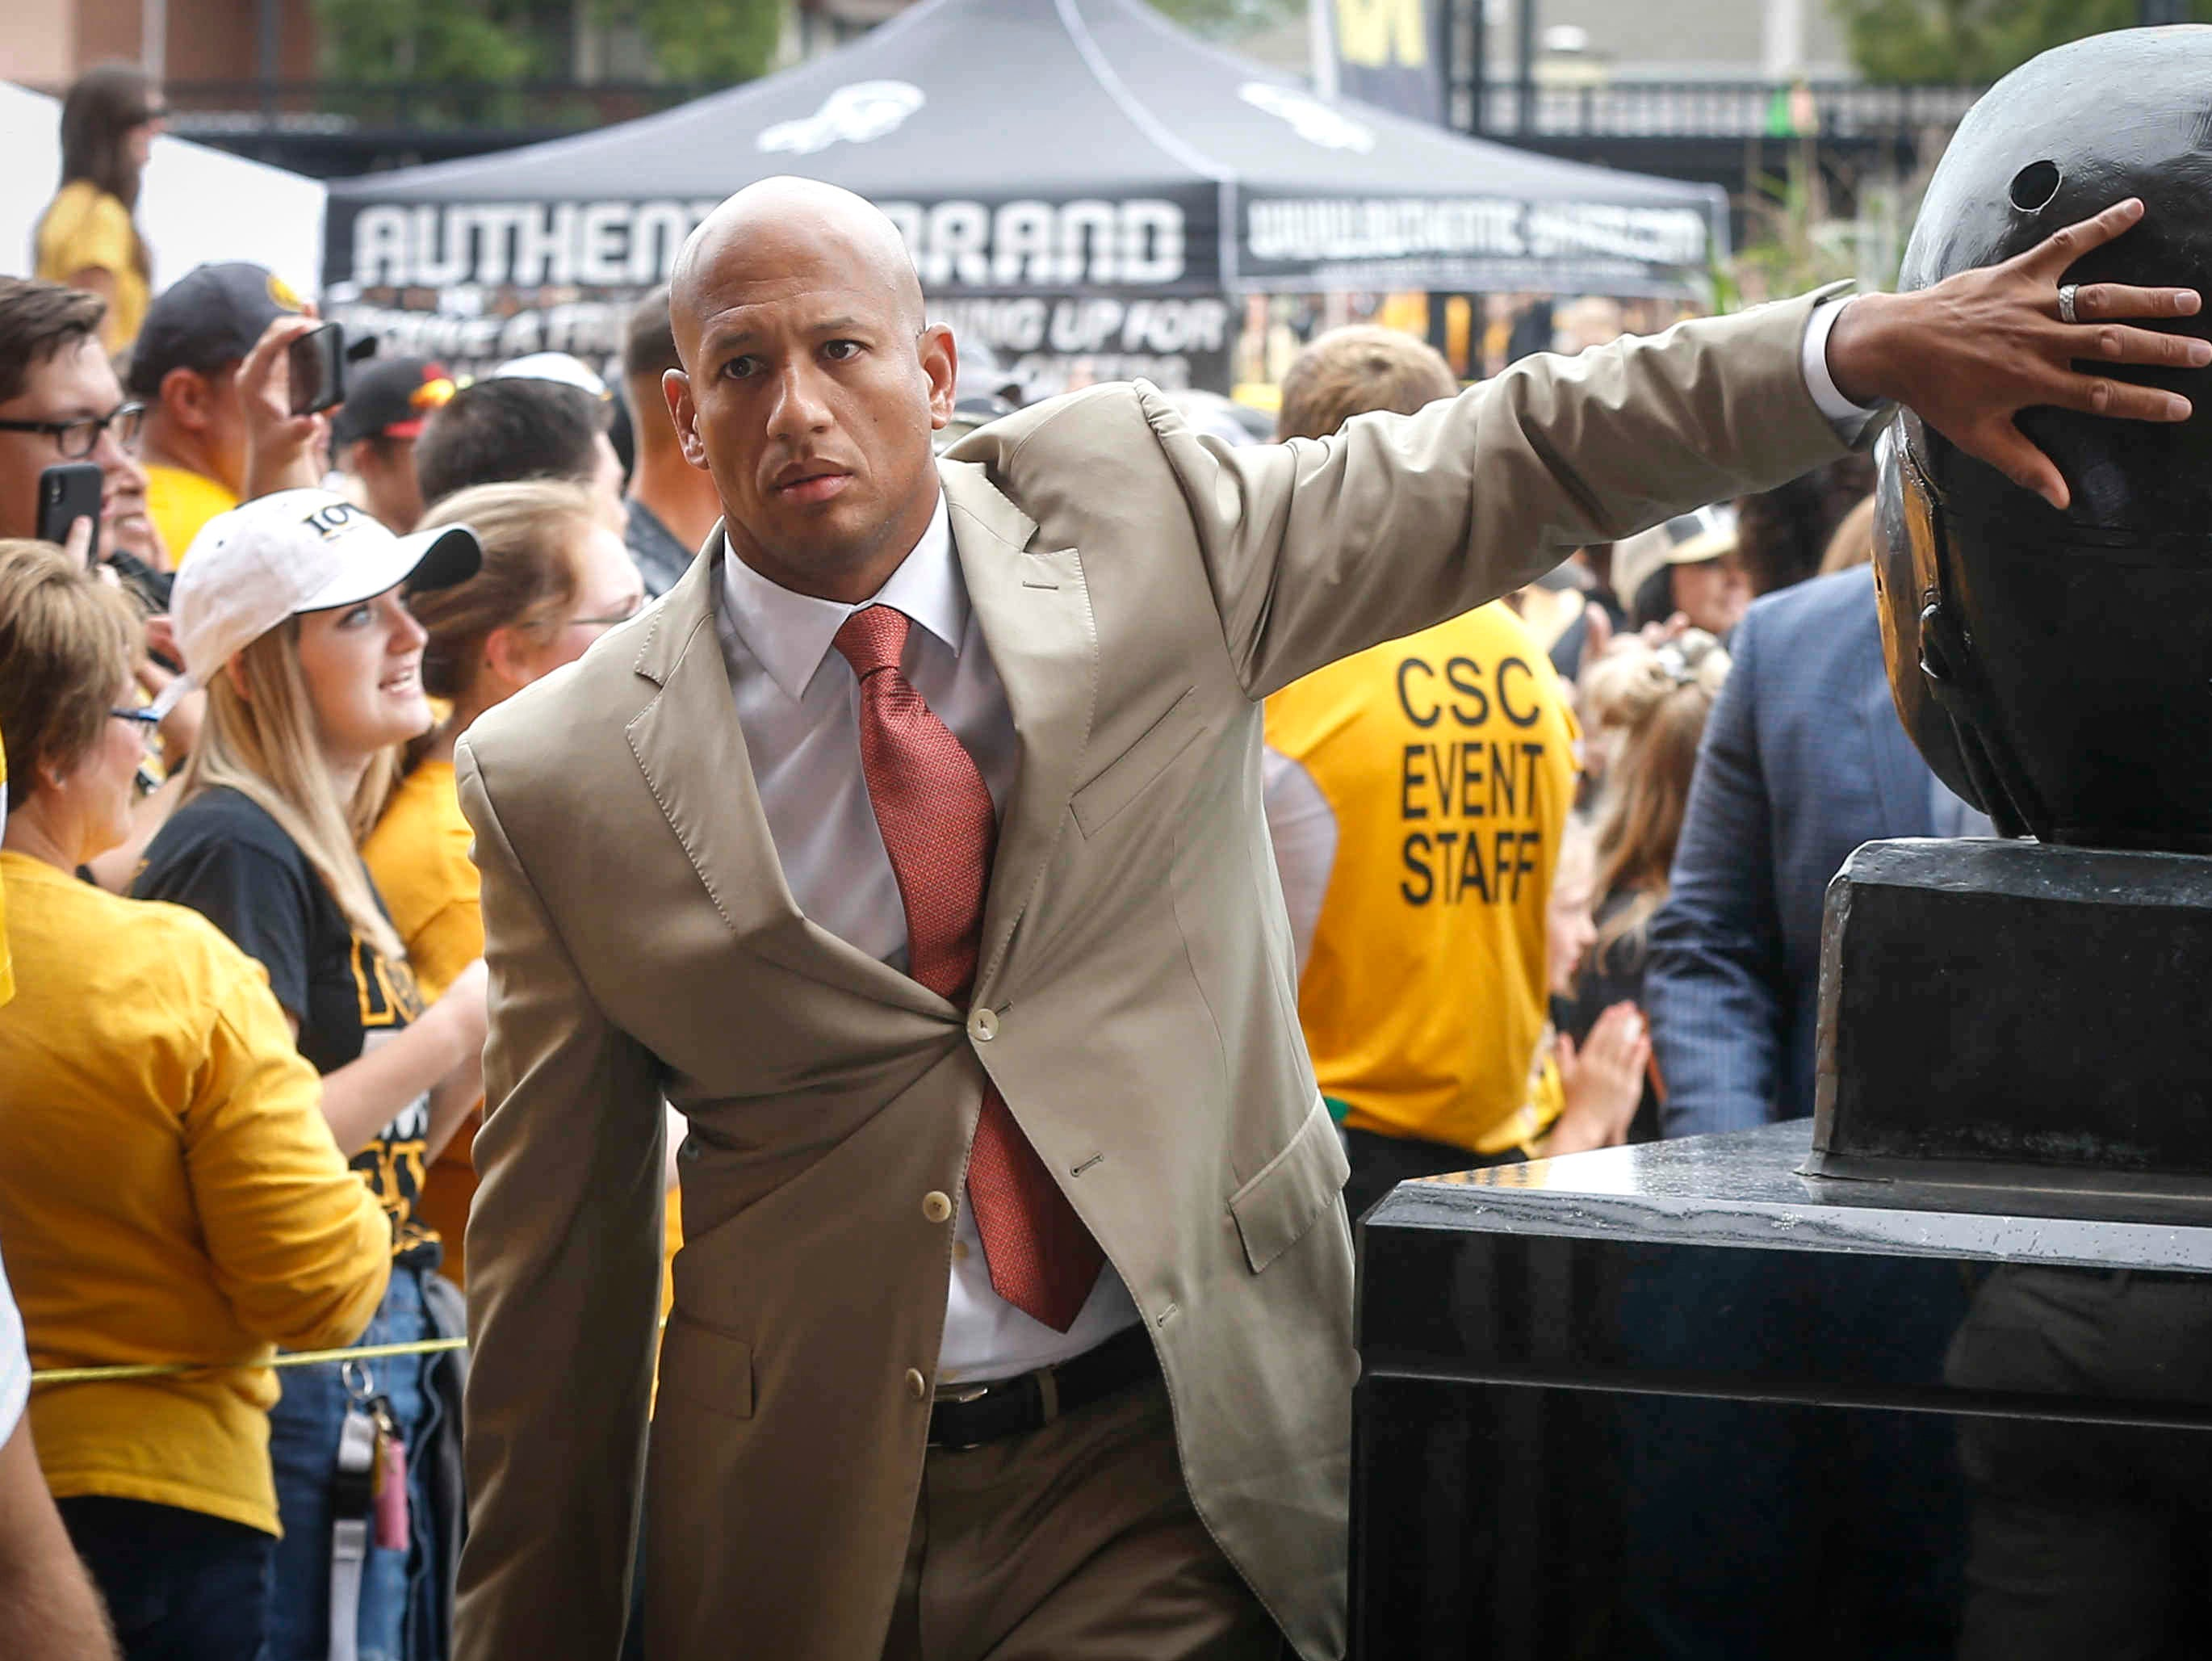 Iowa tight ends coach LeVar Woods enters the stadium prior to kickoff against Iowa State on Saturday, Sept. 9, 2018, at Kinnick Stadium in Iowa City.